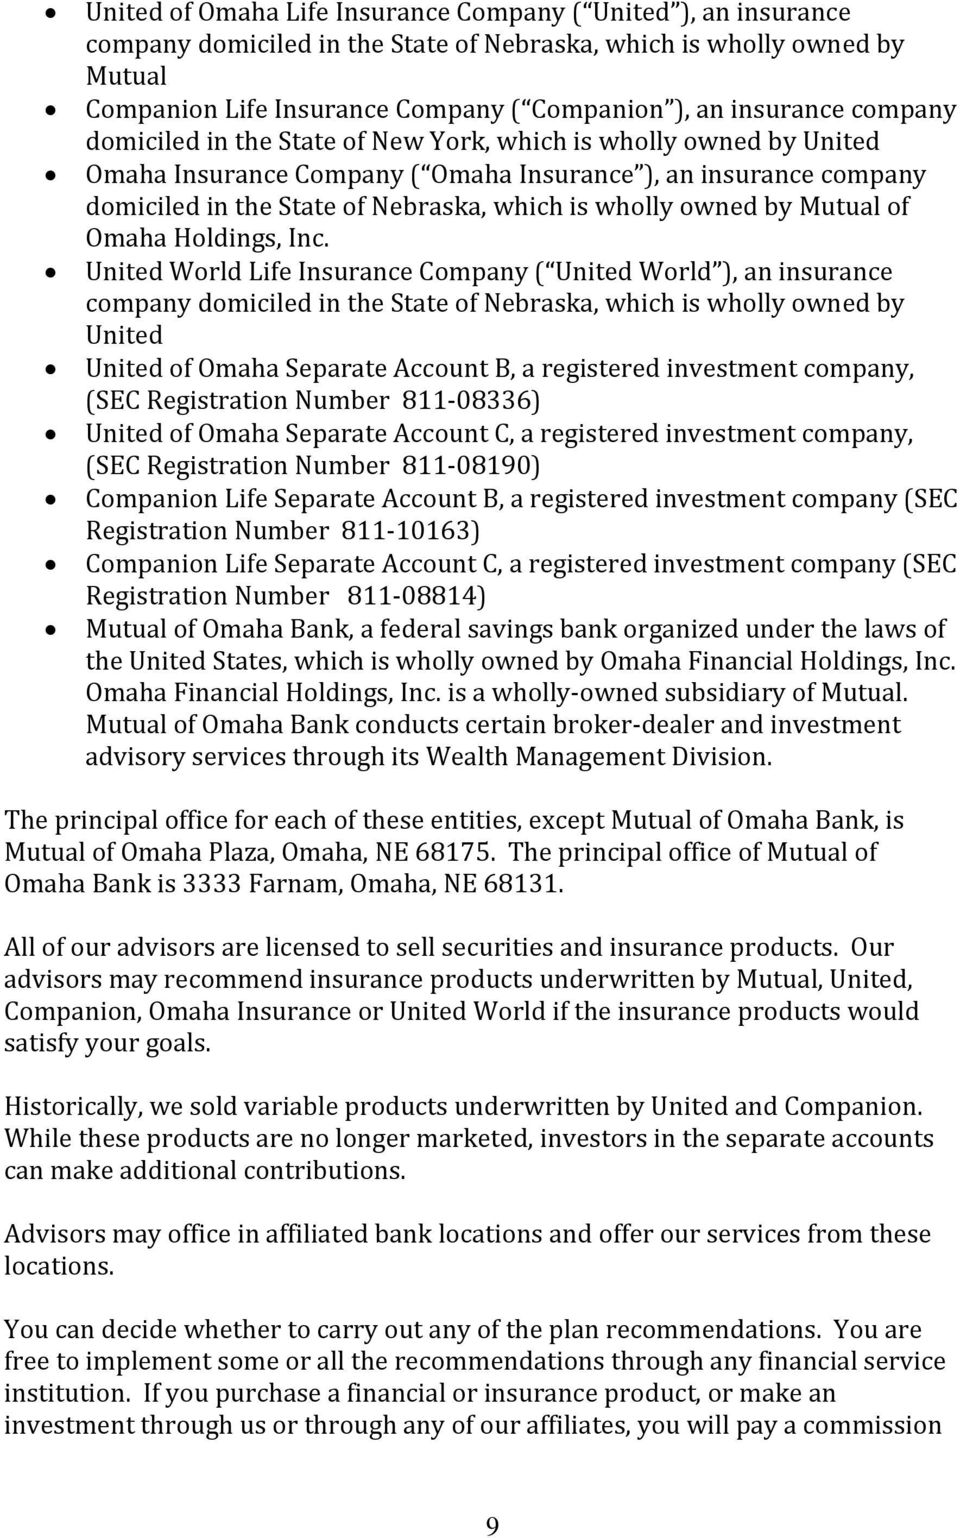 wholly owned by Mutual of Omaha Holdings, Inc.